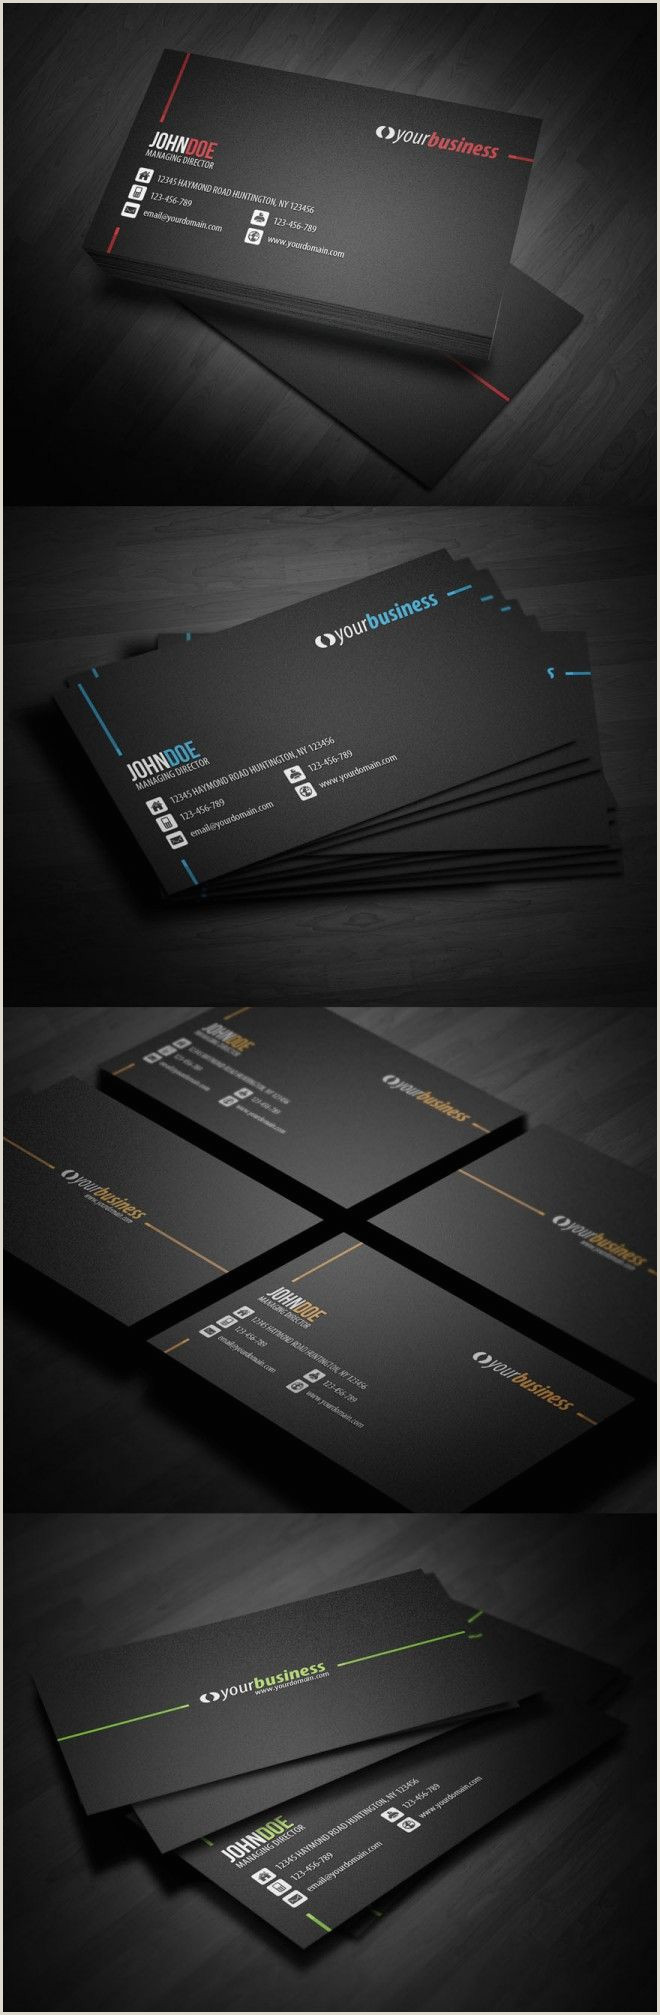 Best Business Cards Companies 50 Creative Corporate Business Card Design Examples Design